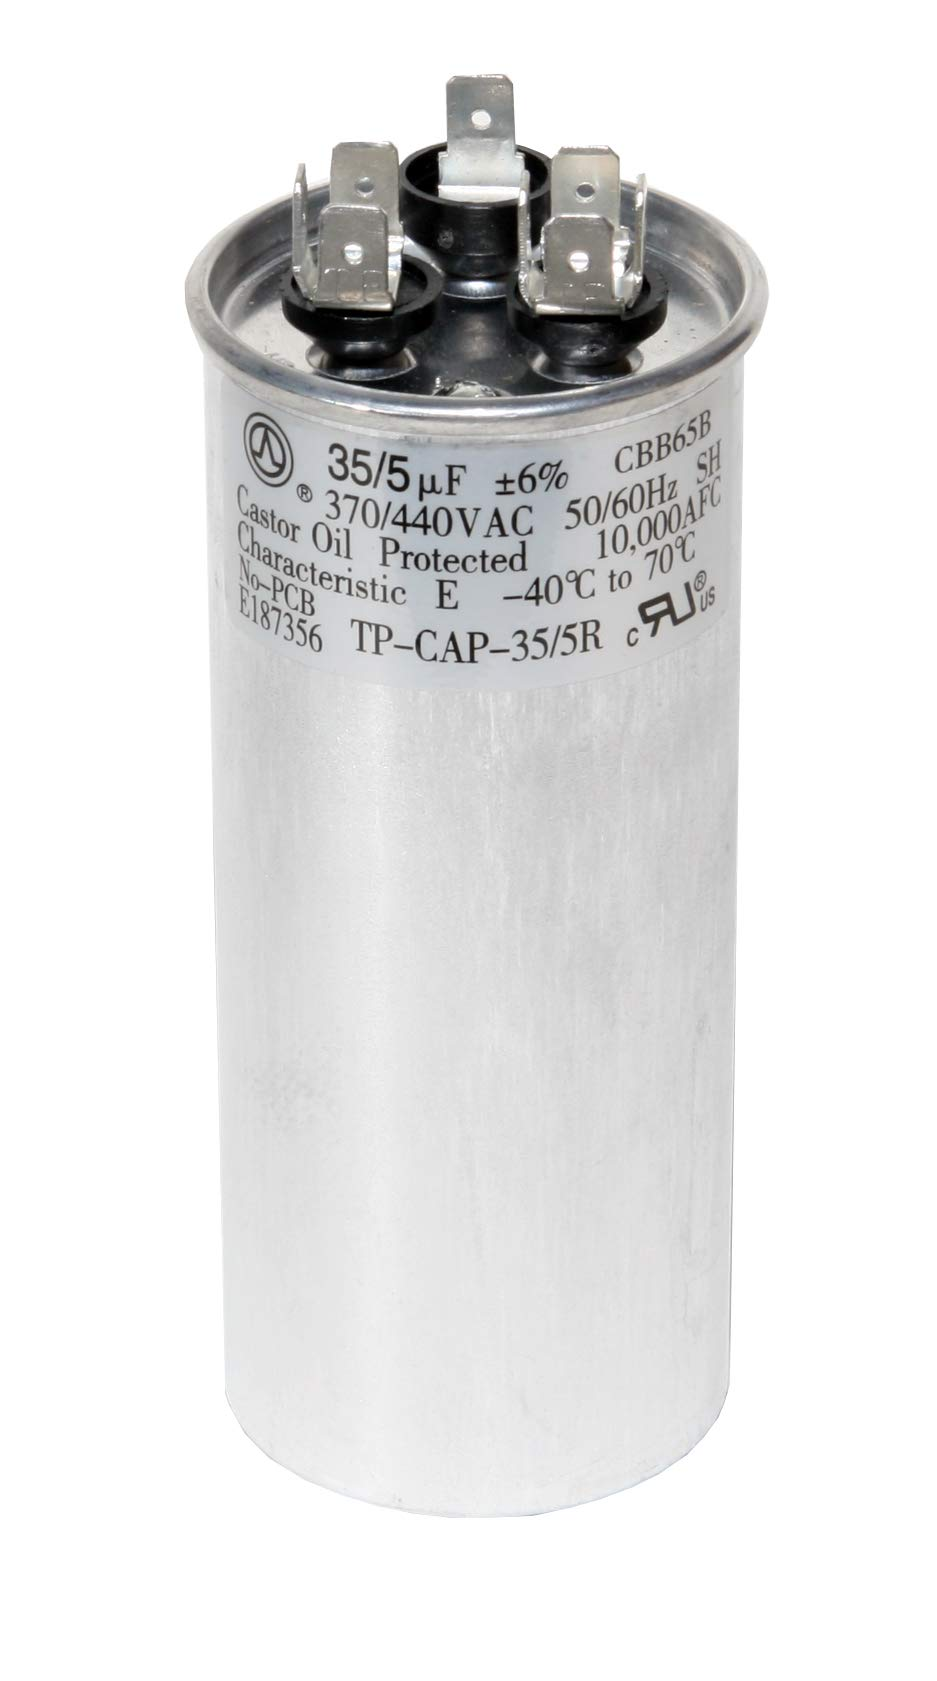 ac run capacitor replacement amazon compowerwell 35 5 uf mfd 370 or 440 volt dual run round capacitor kit tp